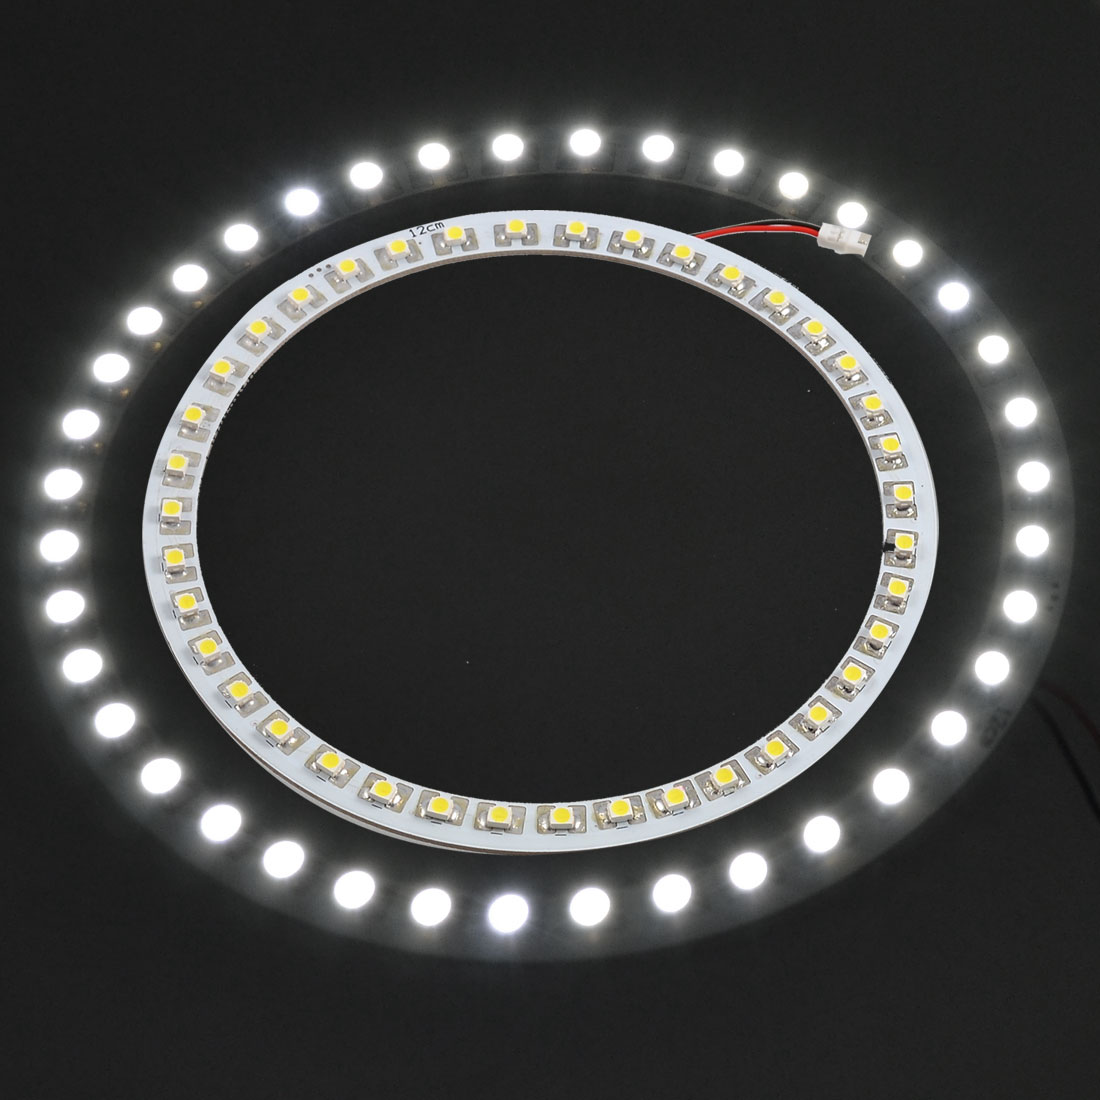 OD 120mm ID 103mm 39 White SMD LED 120mm Angle Eye Head Ring Light Lamp Discount 50(China (Mainland))